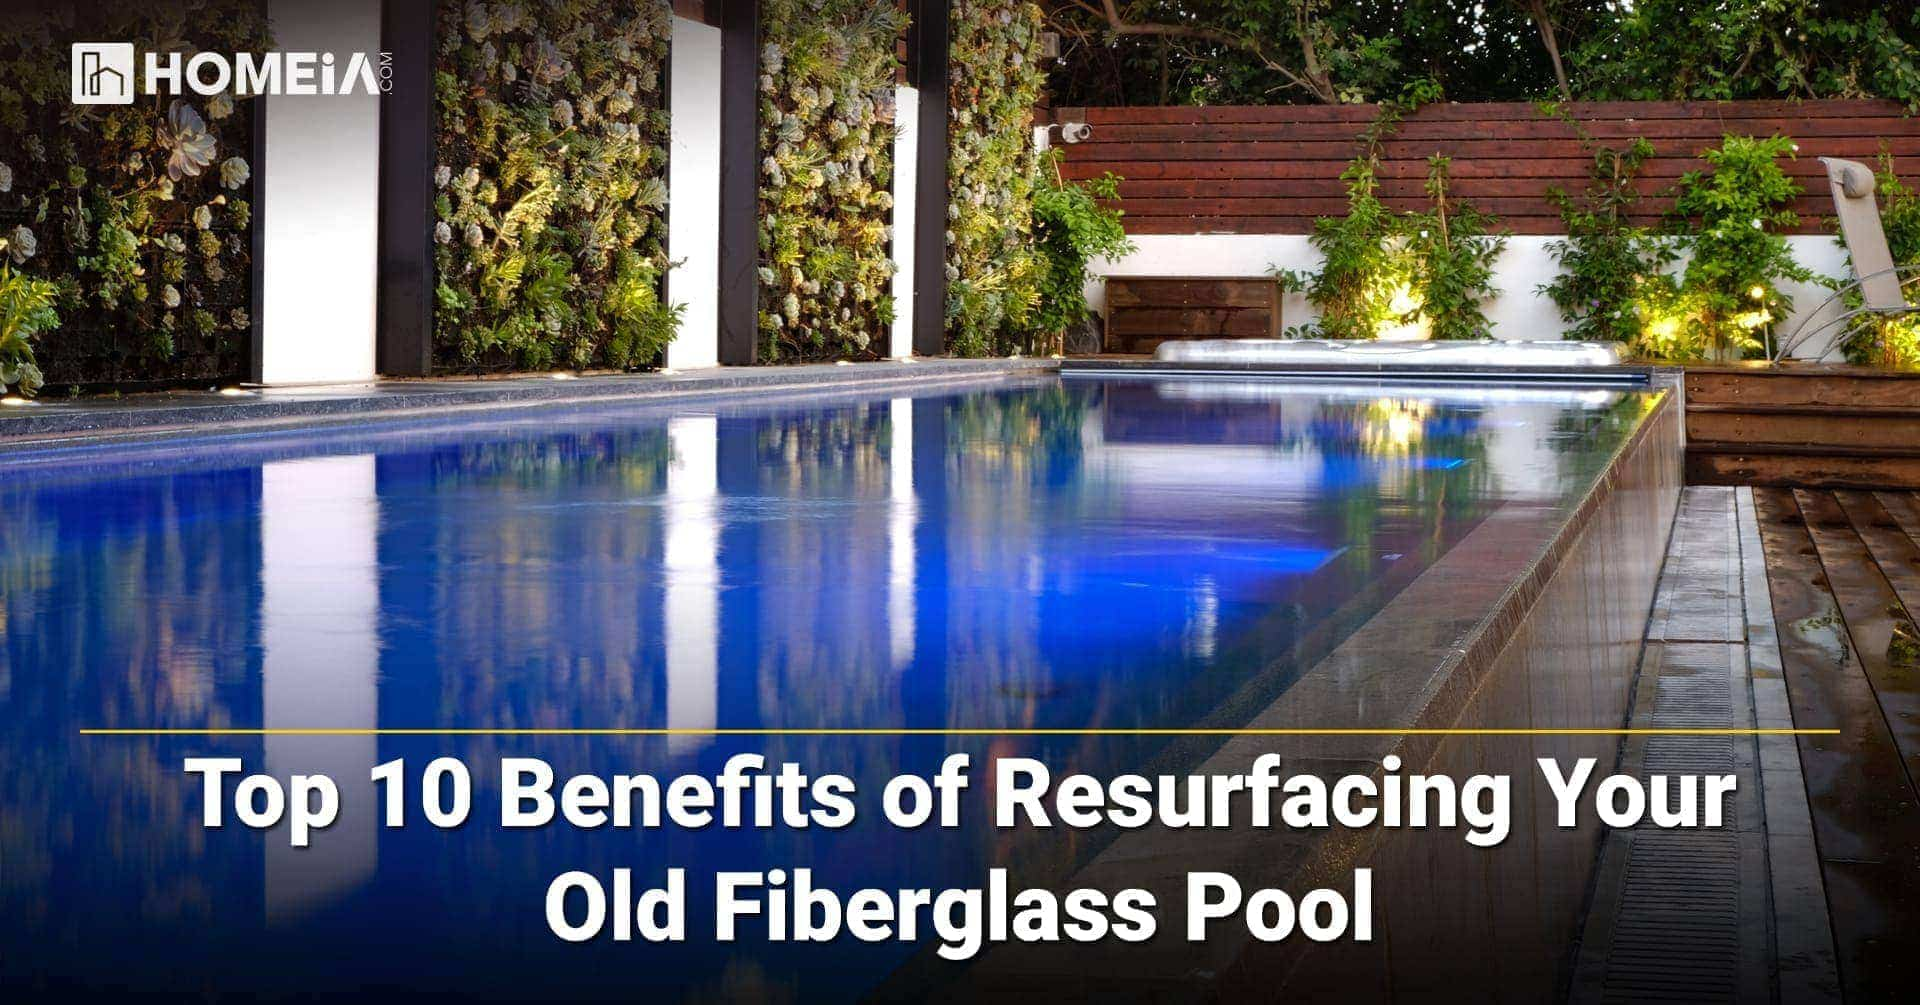 Top 10 Benefits of Resurfacing Your Old Fiberglass Pool